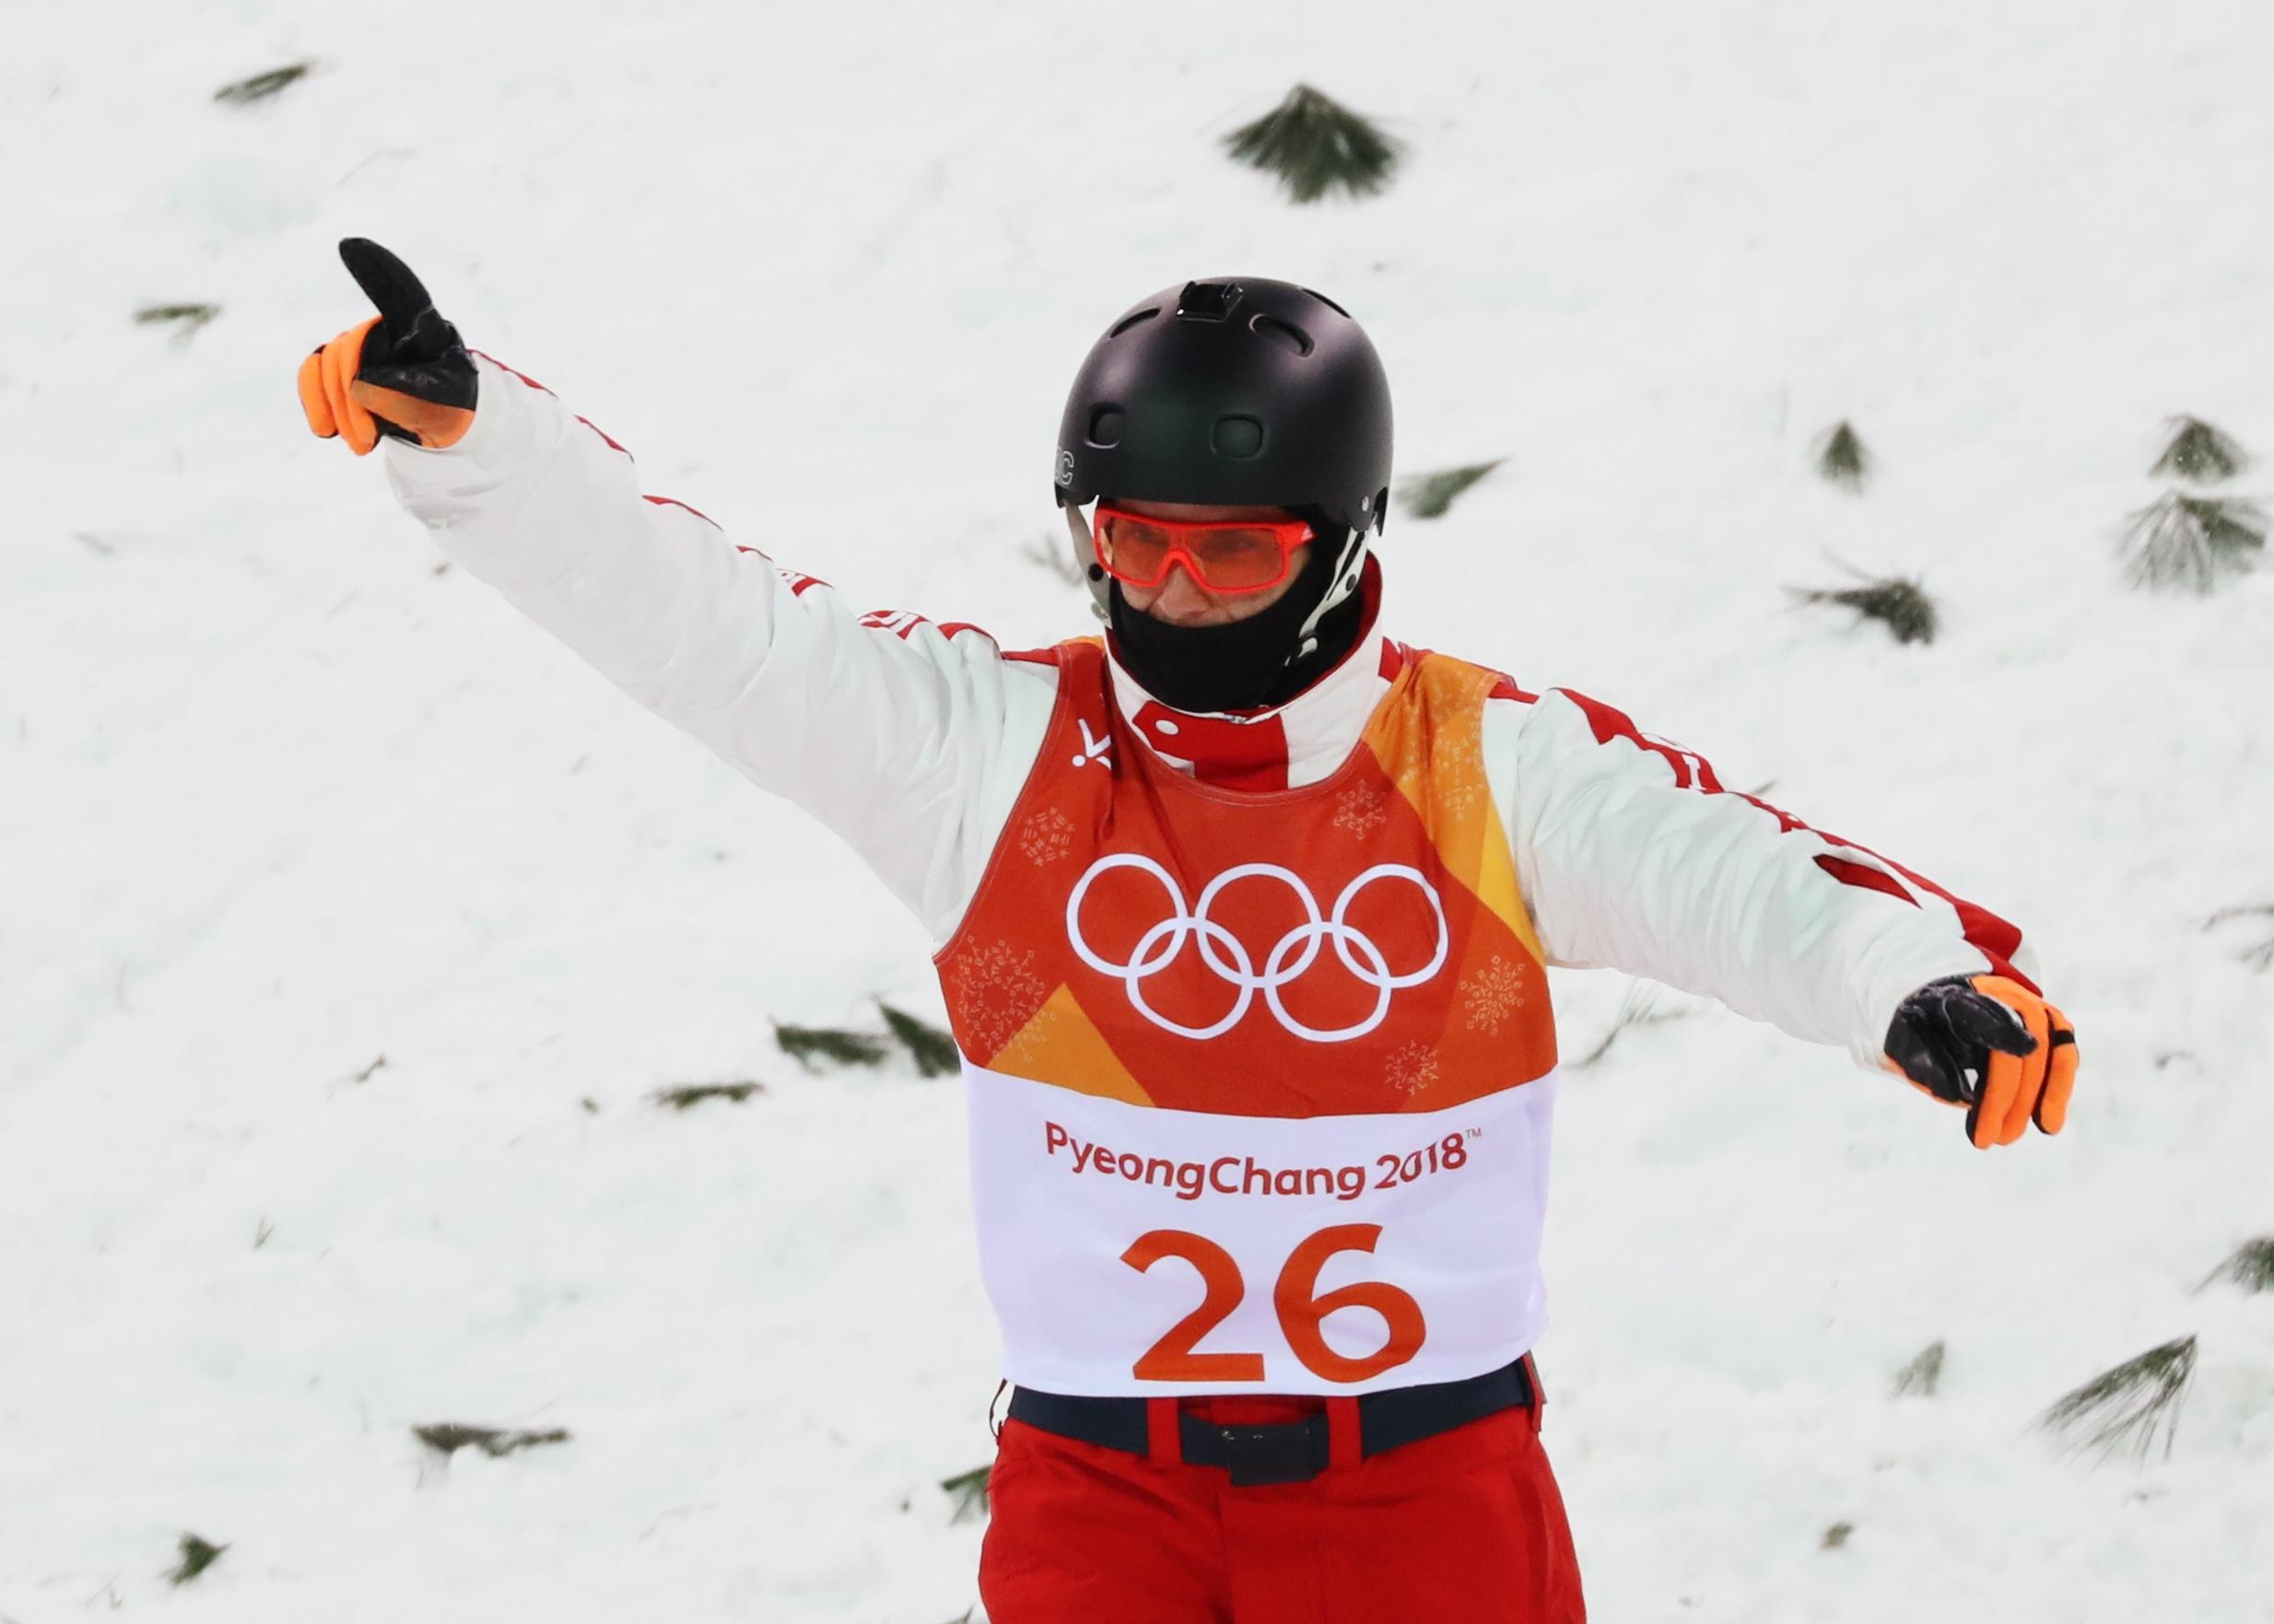 Swiss skier's father biked 10,000 miles to watch his son in Olympics